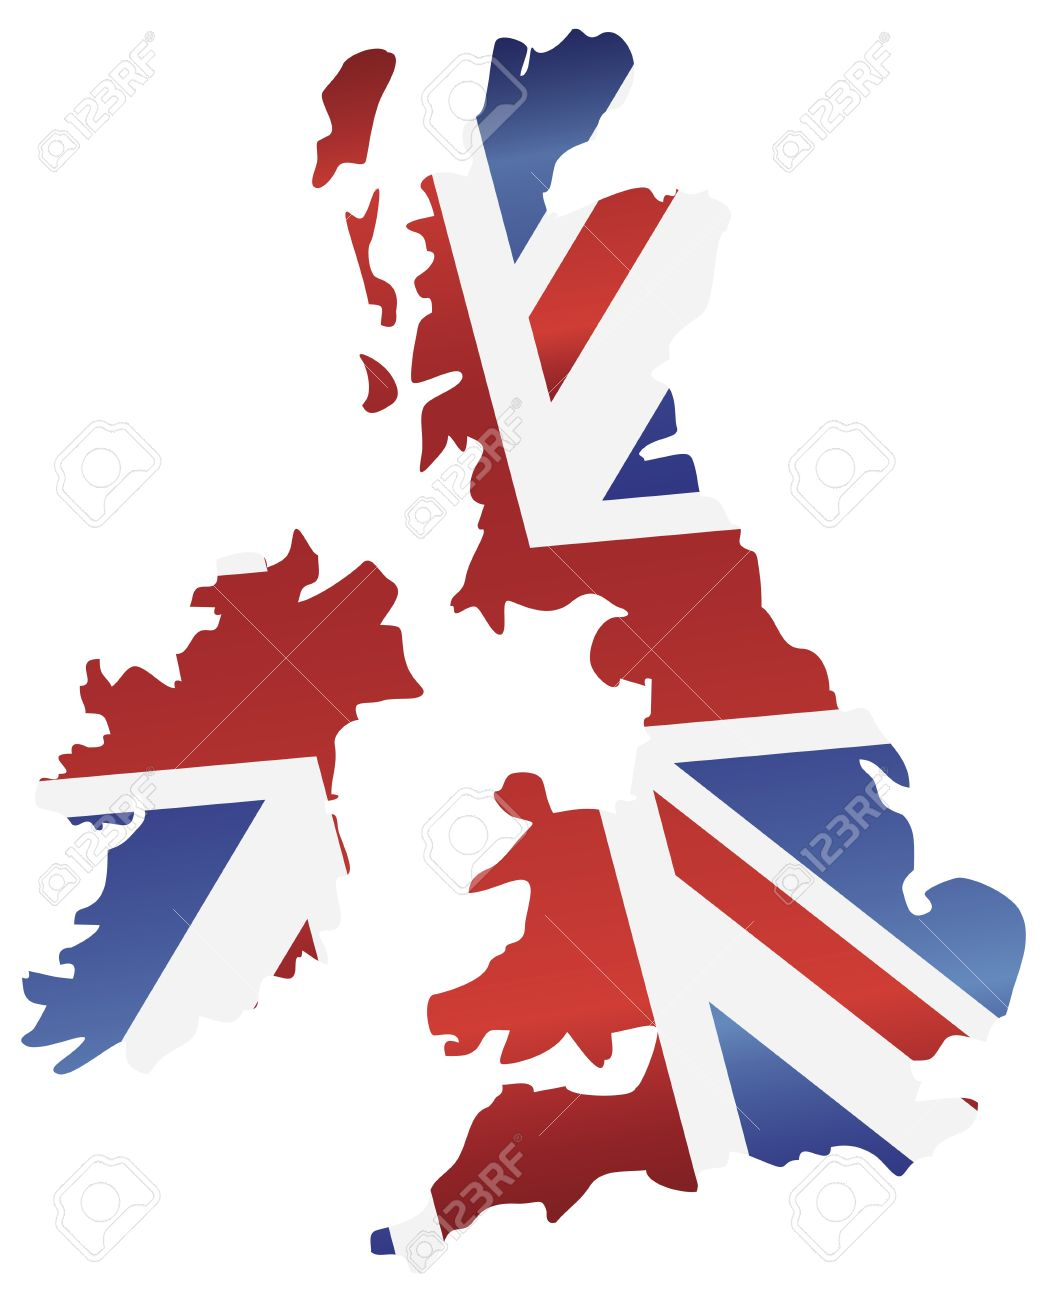 Blank united kingdom clipart map picture stock UK Great Britain Union Jack Flag In Map Silhouette Illustration ... picture stock